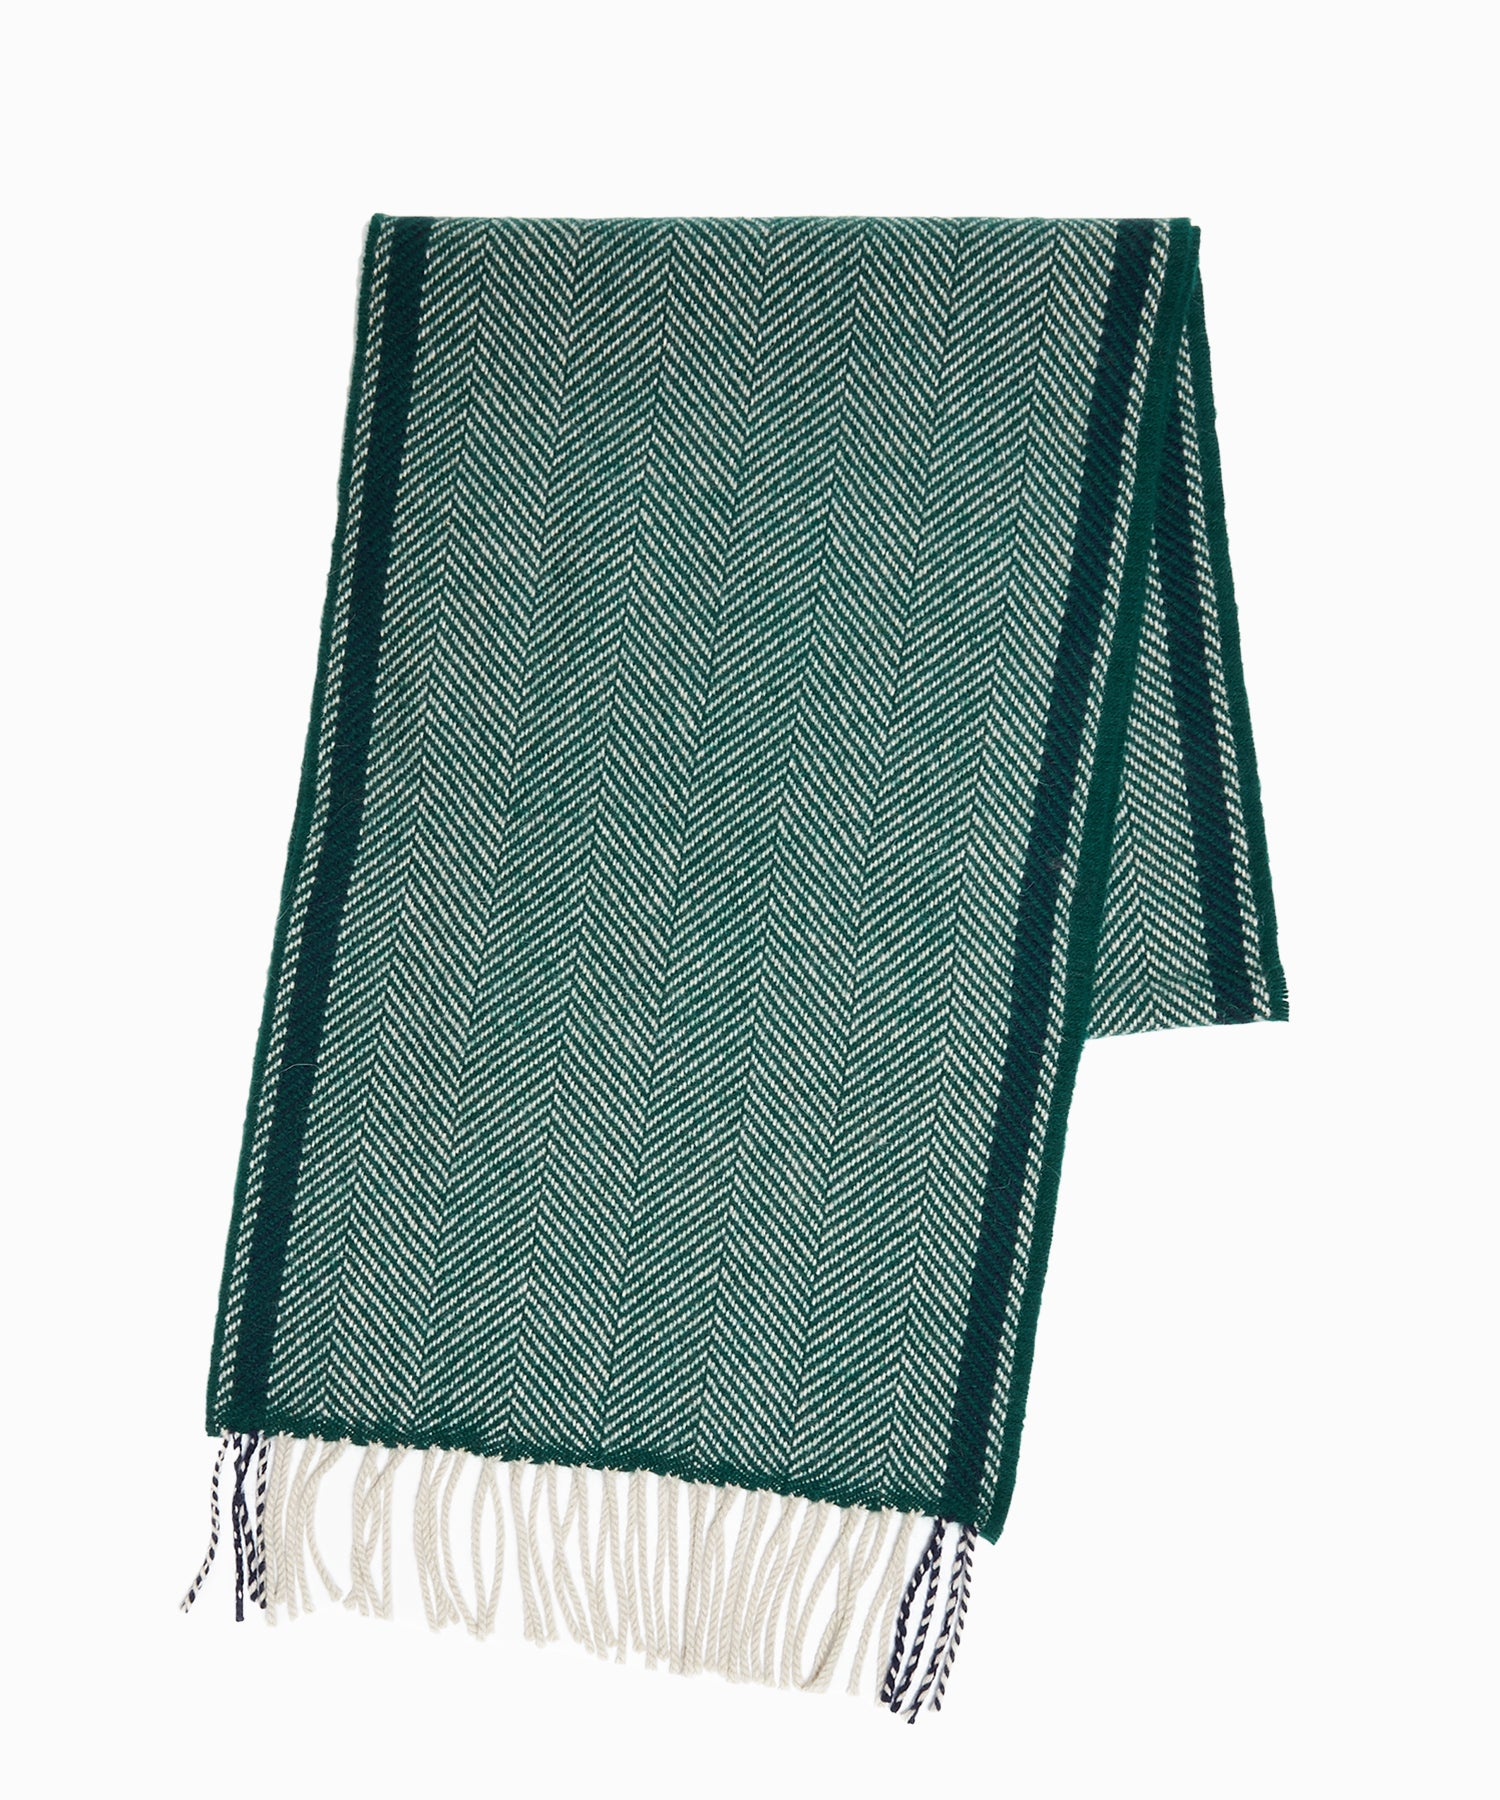 Drake's Lambswool Herringbone Scarf in Green